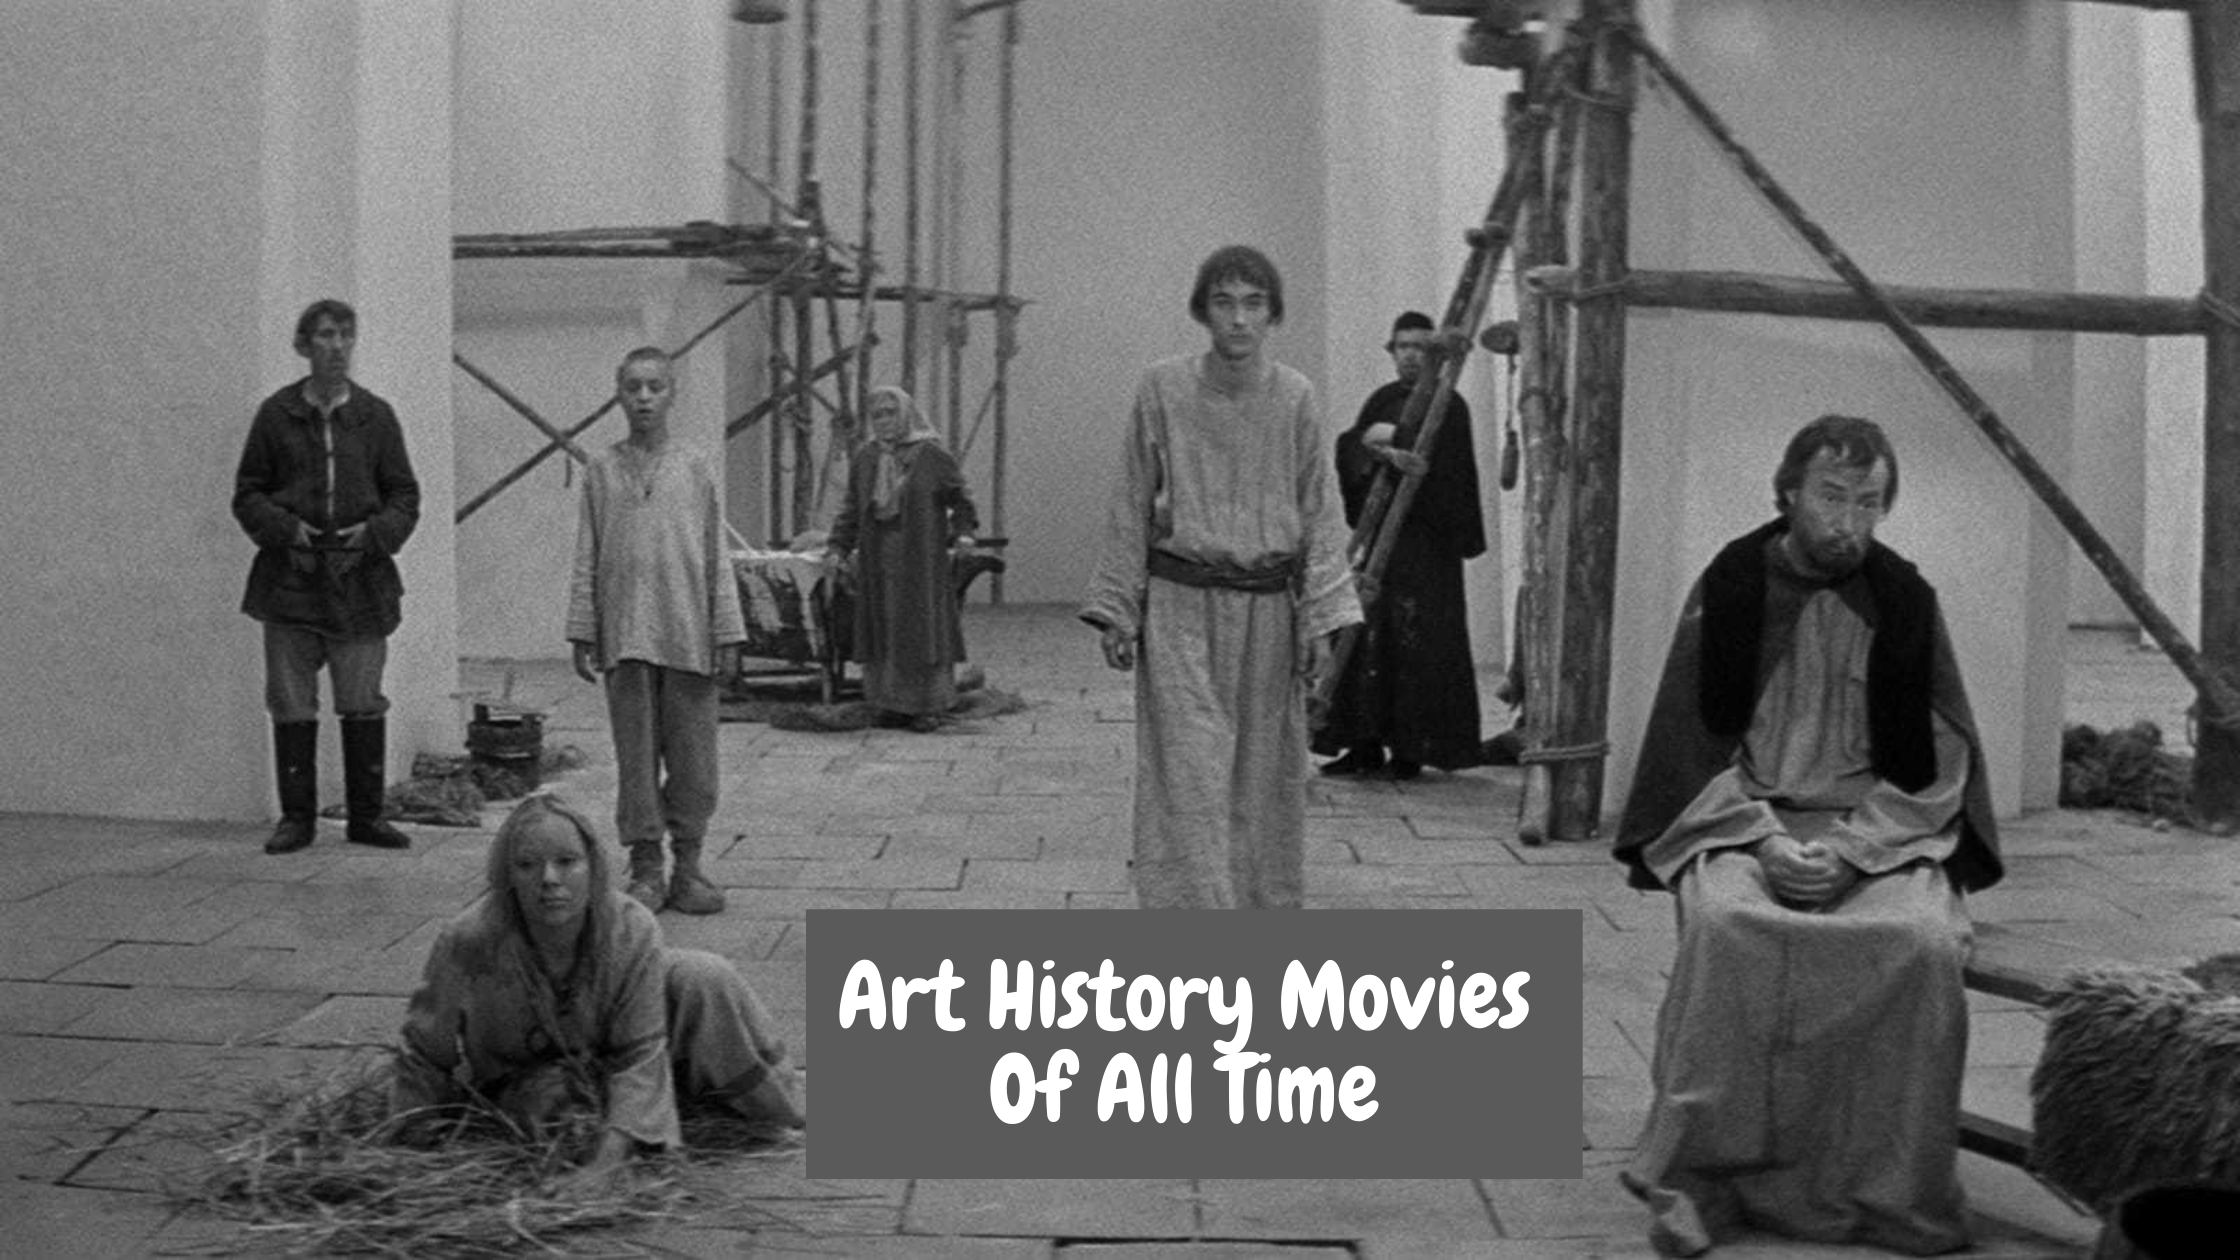 Art History Movies Of All Time